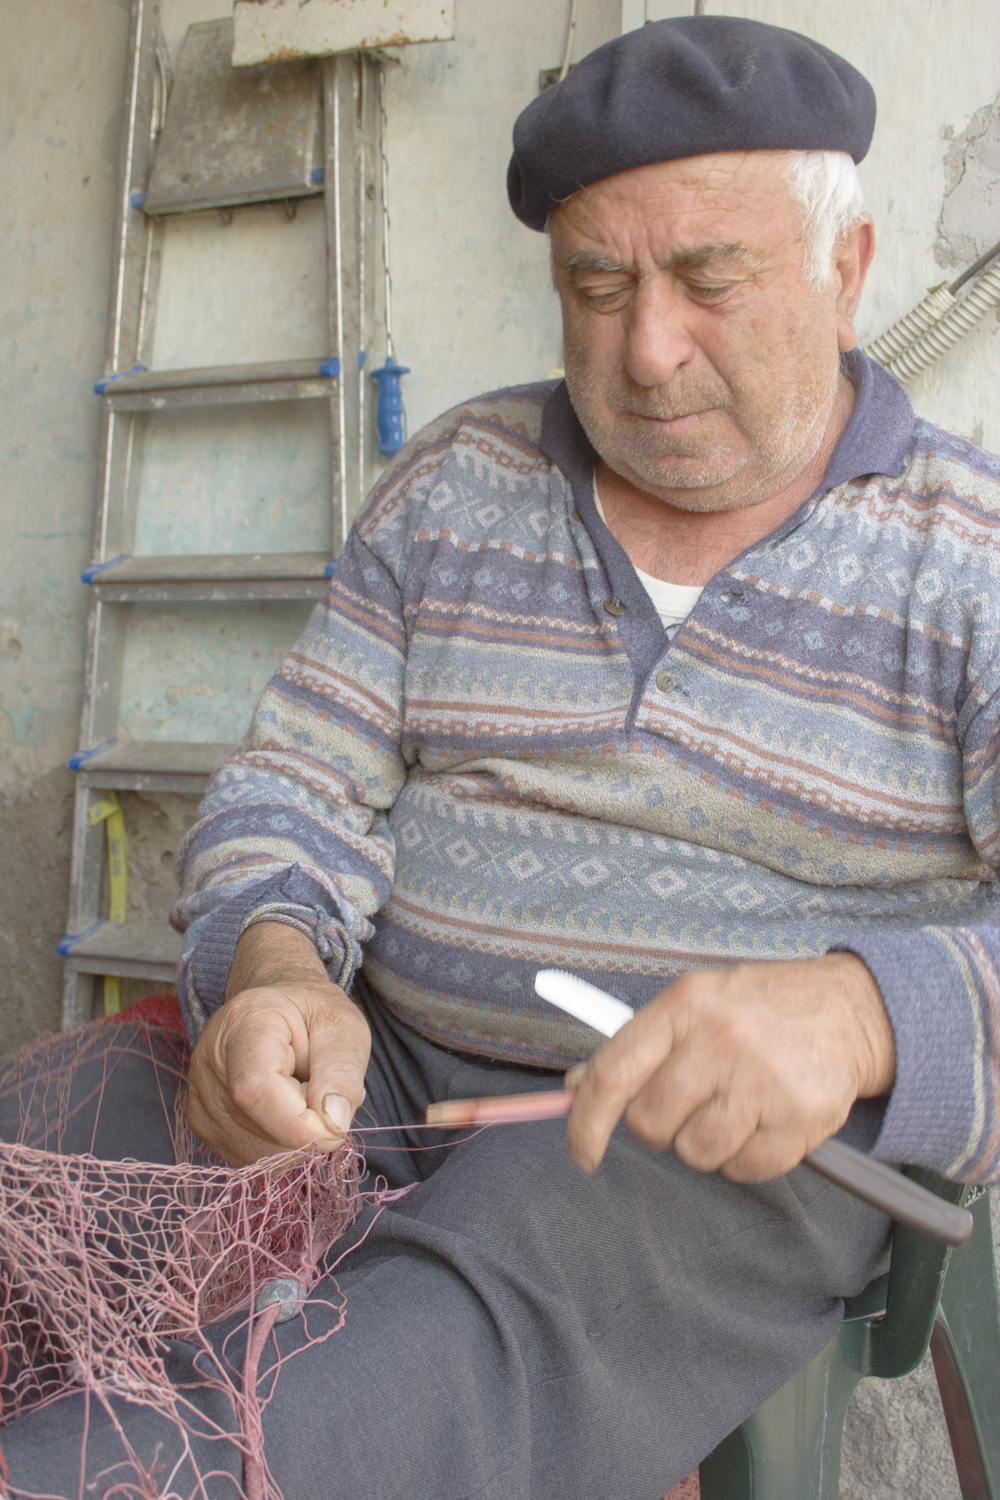 Fisherman mending nets, Sicily